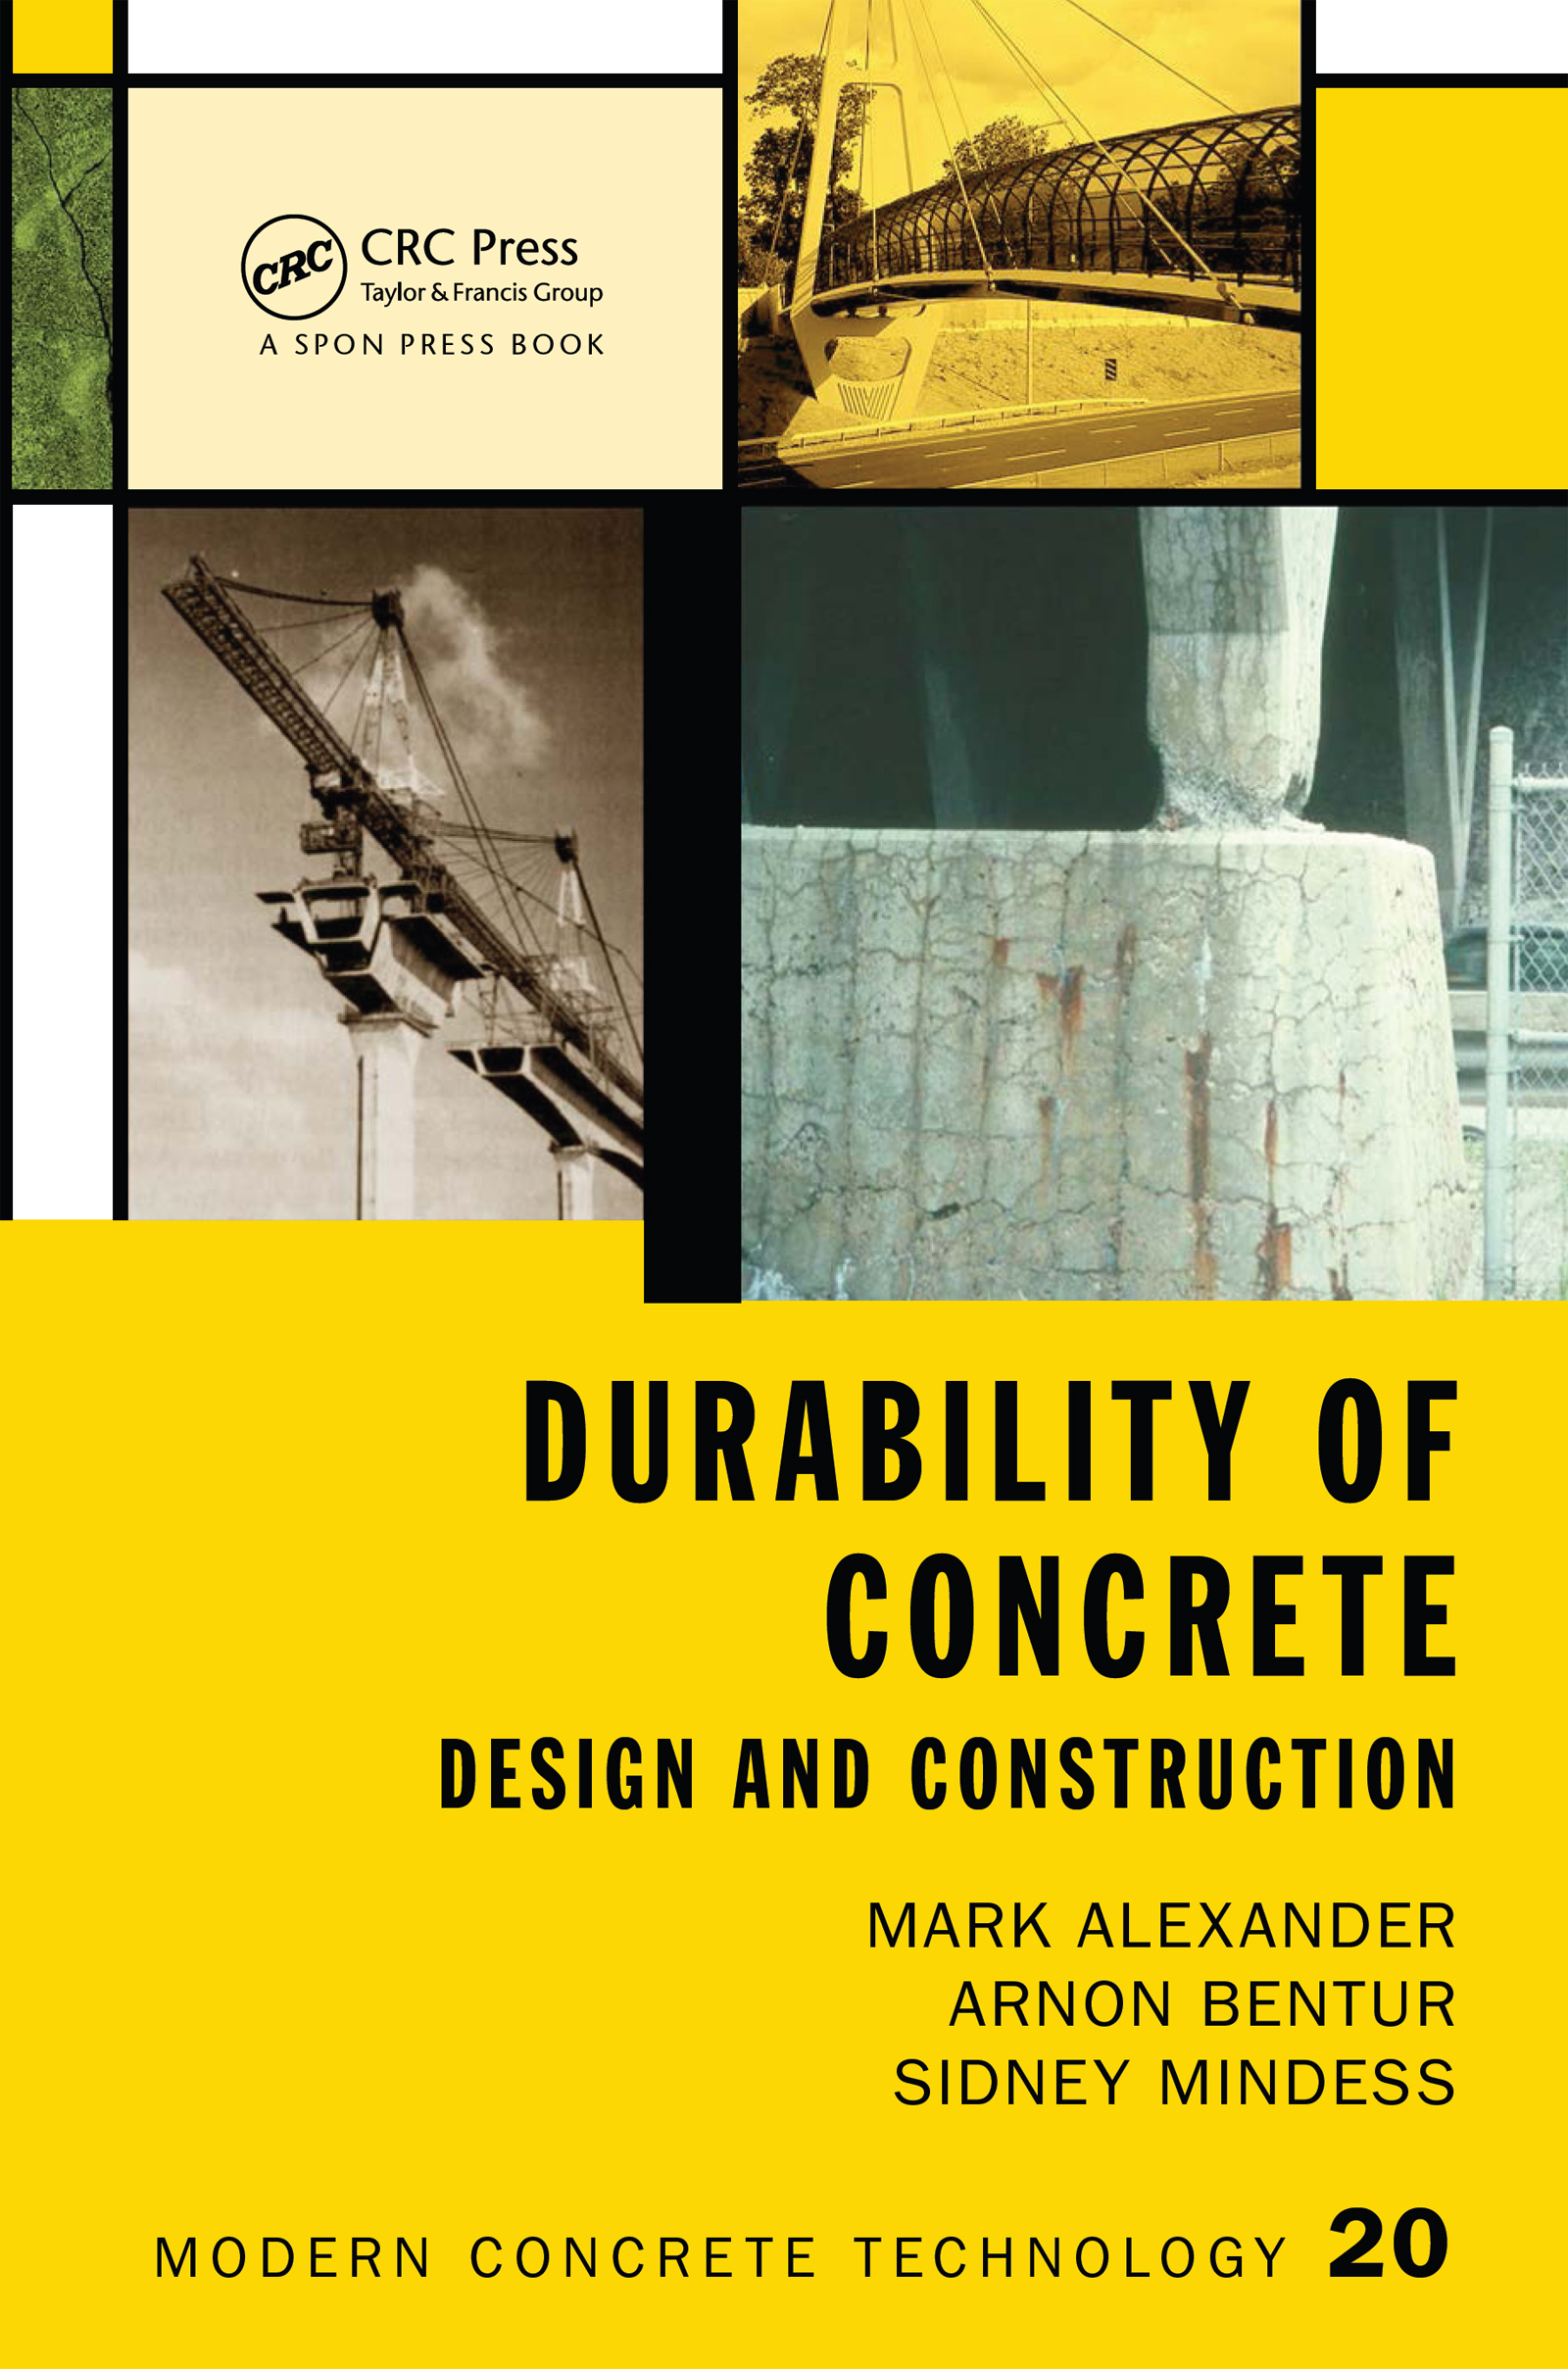 Durability of Concrete: Design and Construction book cover